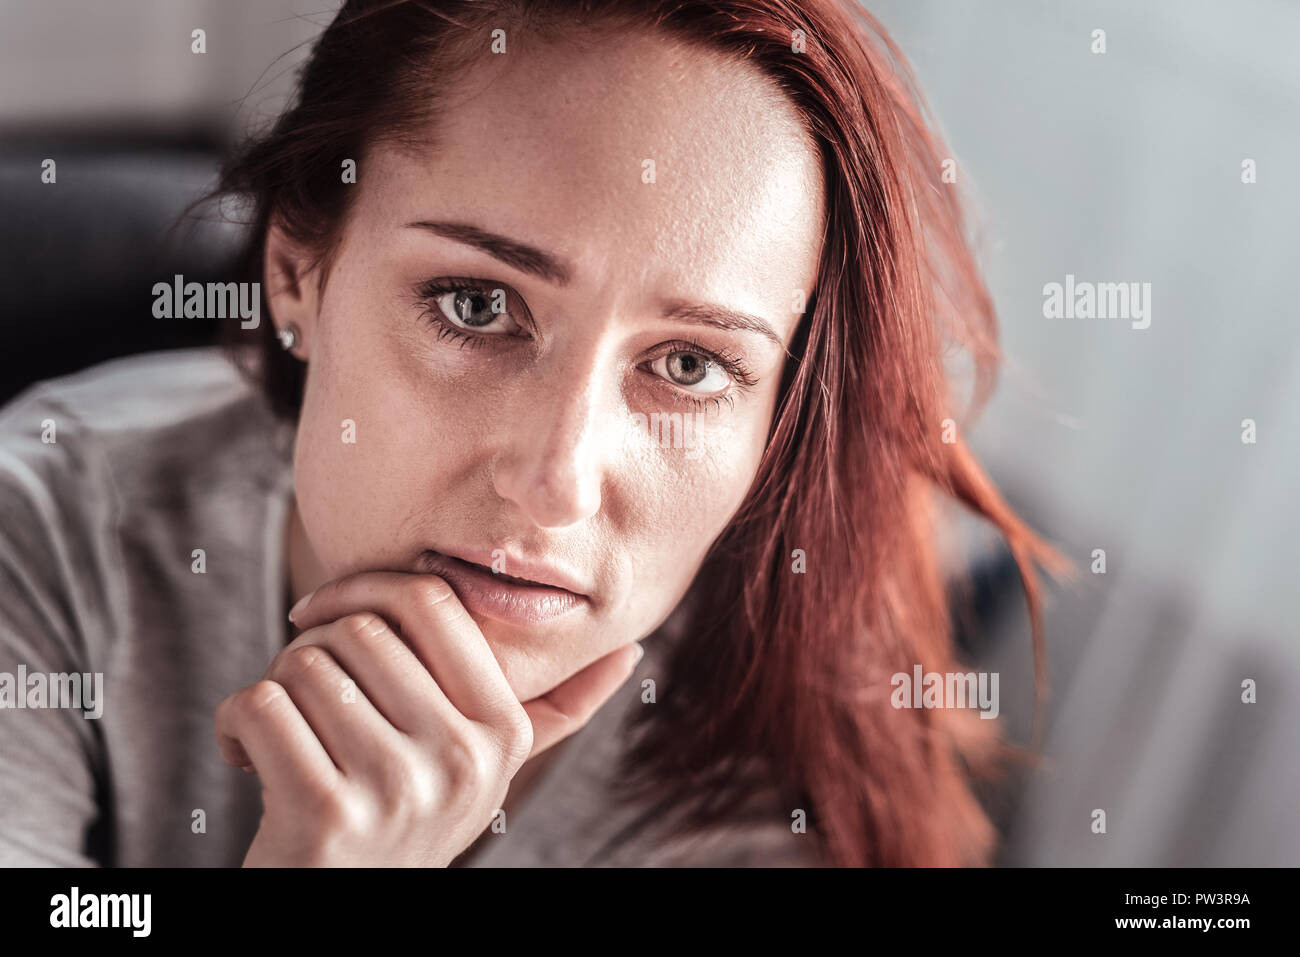 Portrait of a depressed thoughtful woman - Stock Image